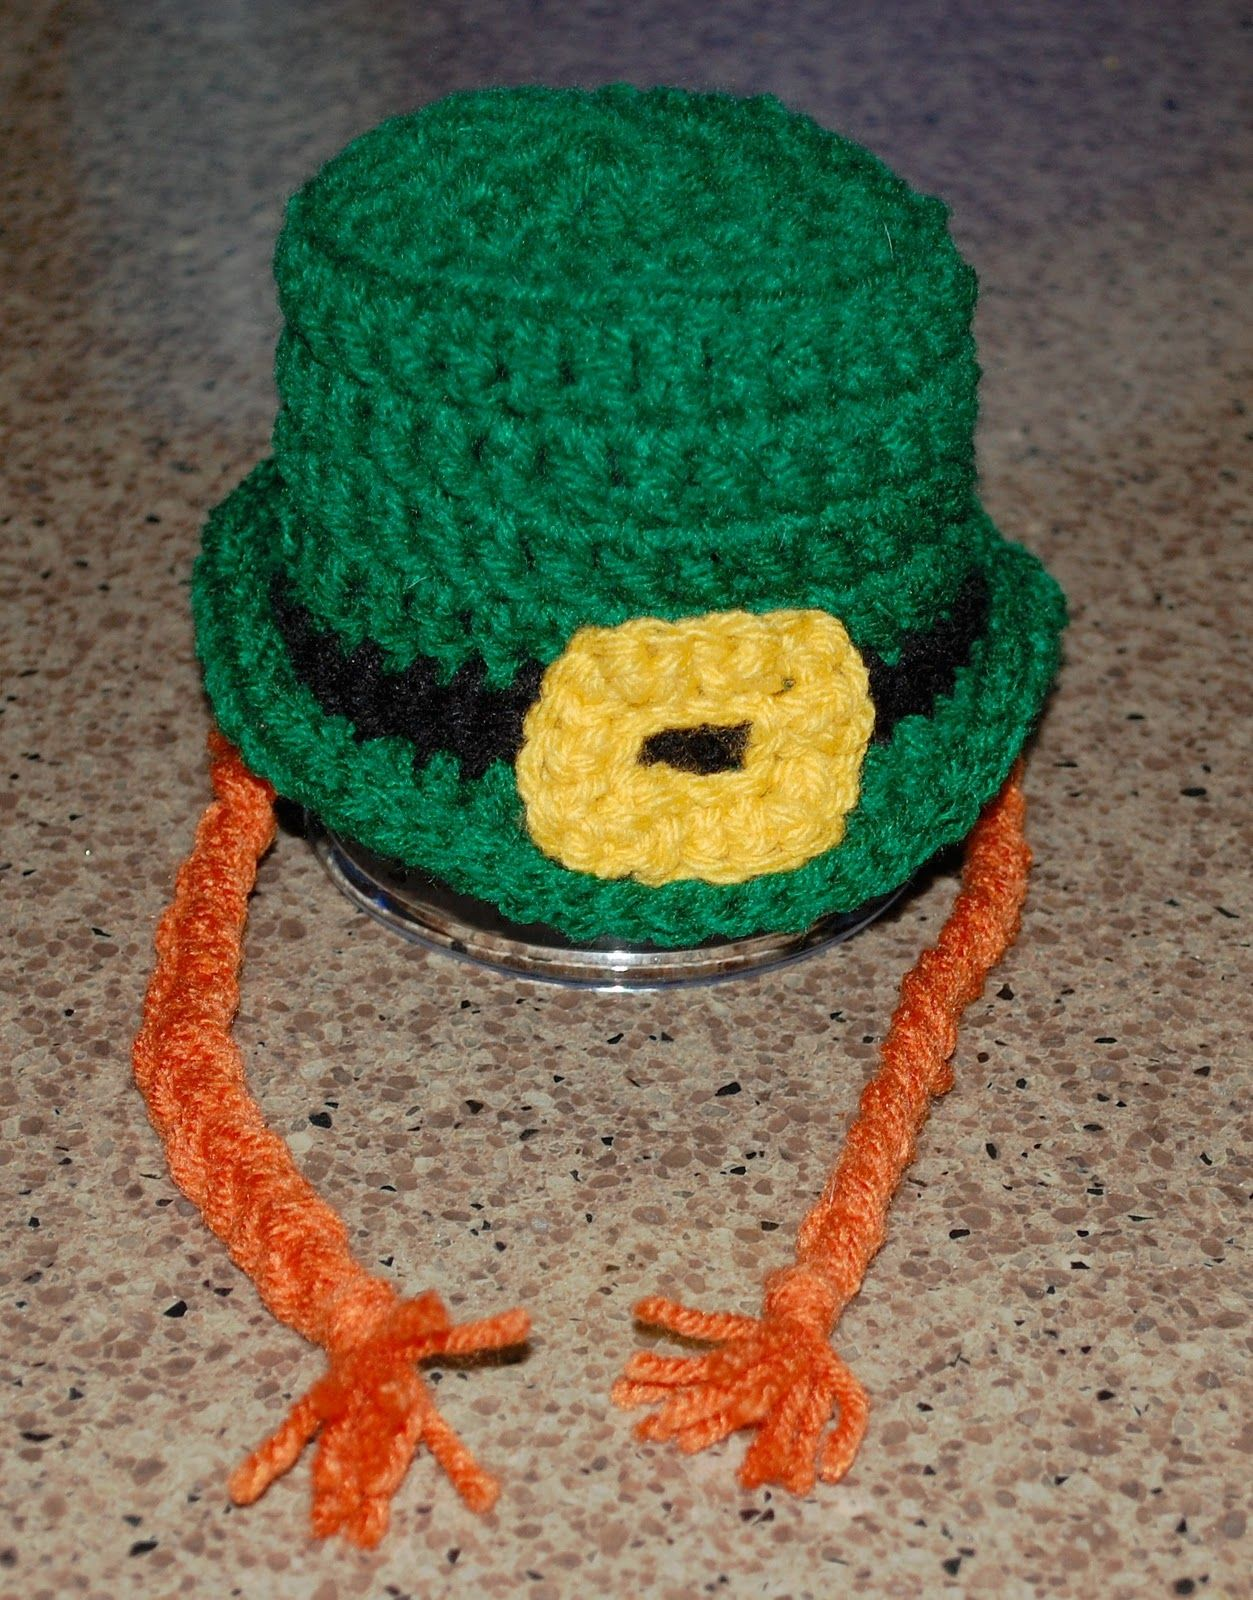 Posh pooch designs dog clothes crochet pattern leprechaun dog posh pooch designs dog clothes crochet pattern leprechaun dog hat bankloansurffo Image collections